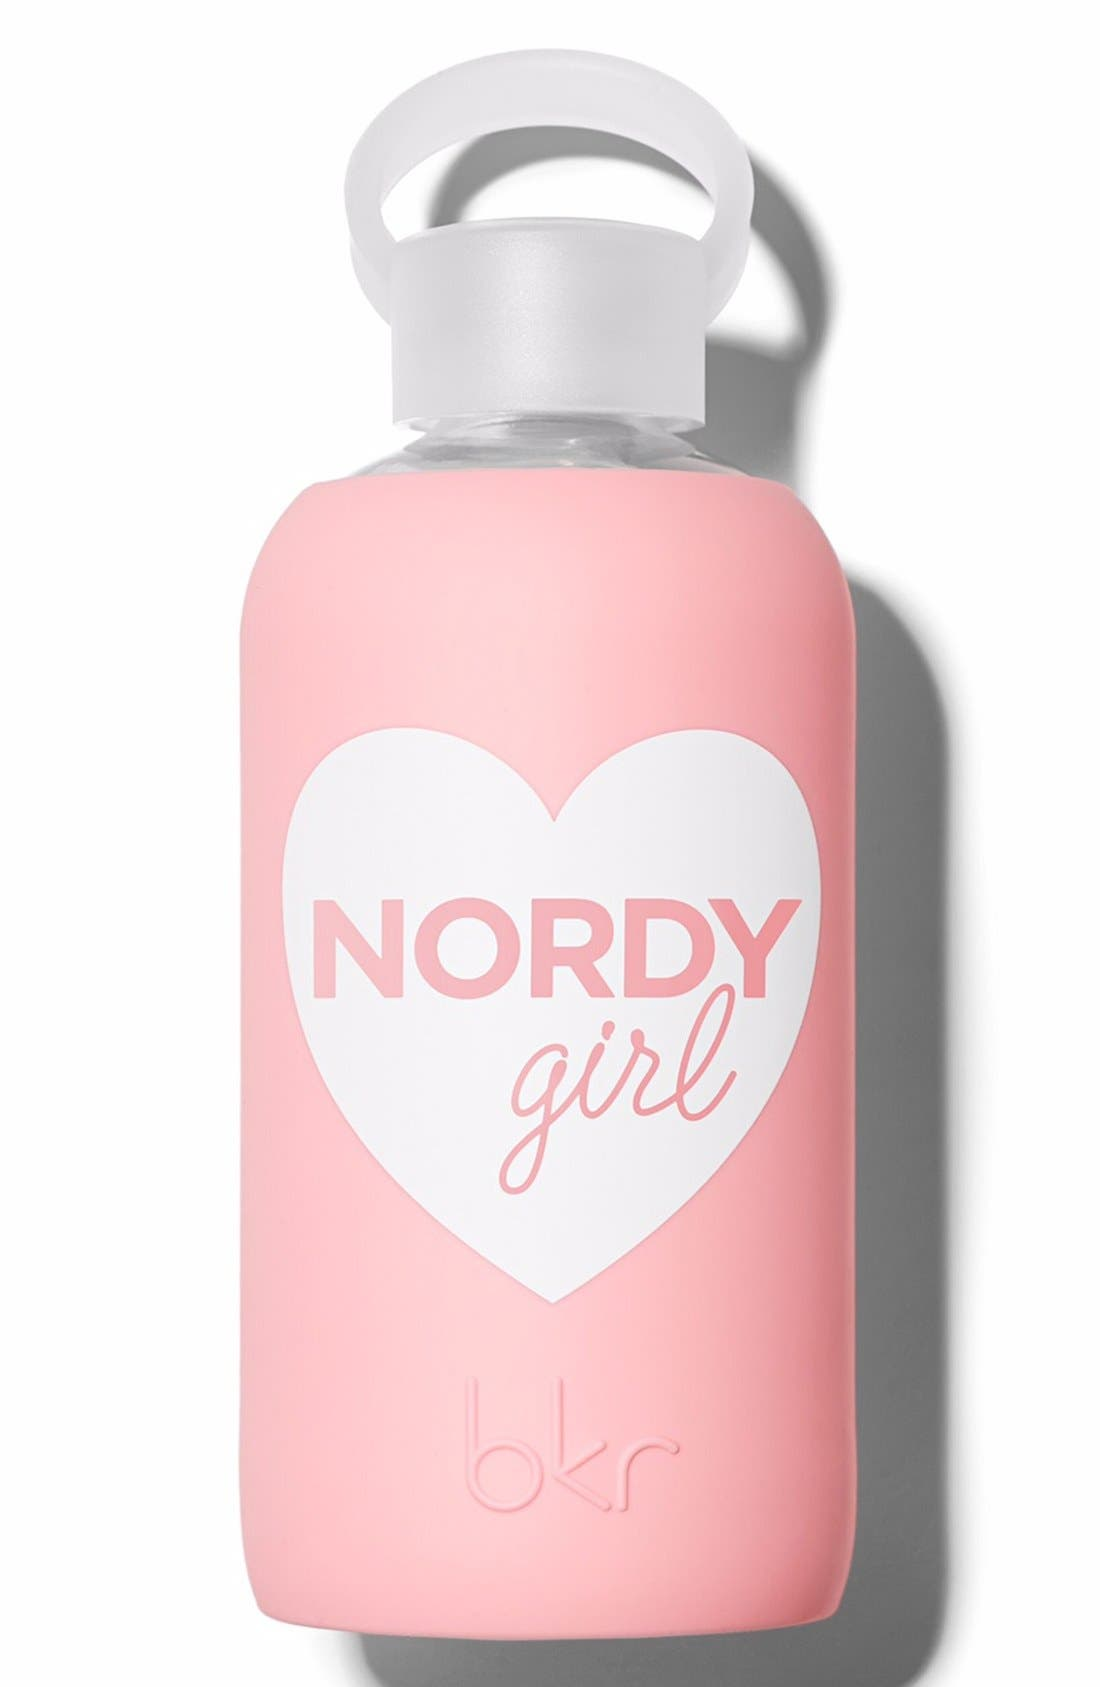 Nordy Girl 16-Ounce Glass Water Bottle,                             Main thumbnail 1, color,                             No Color